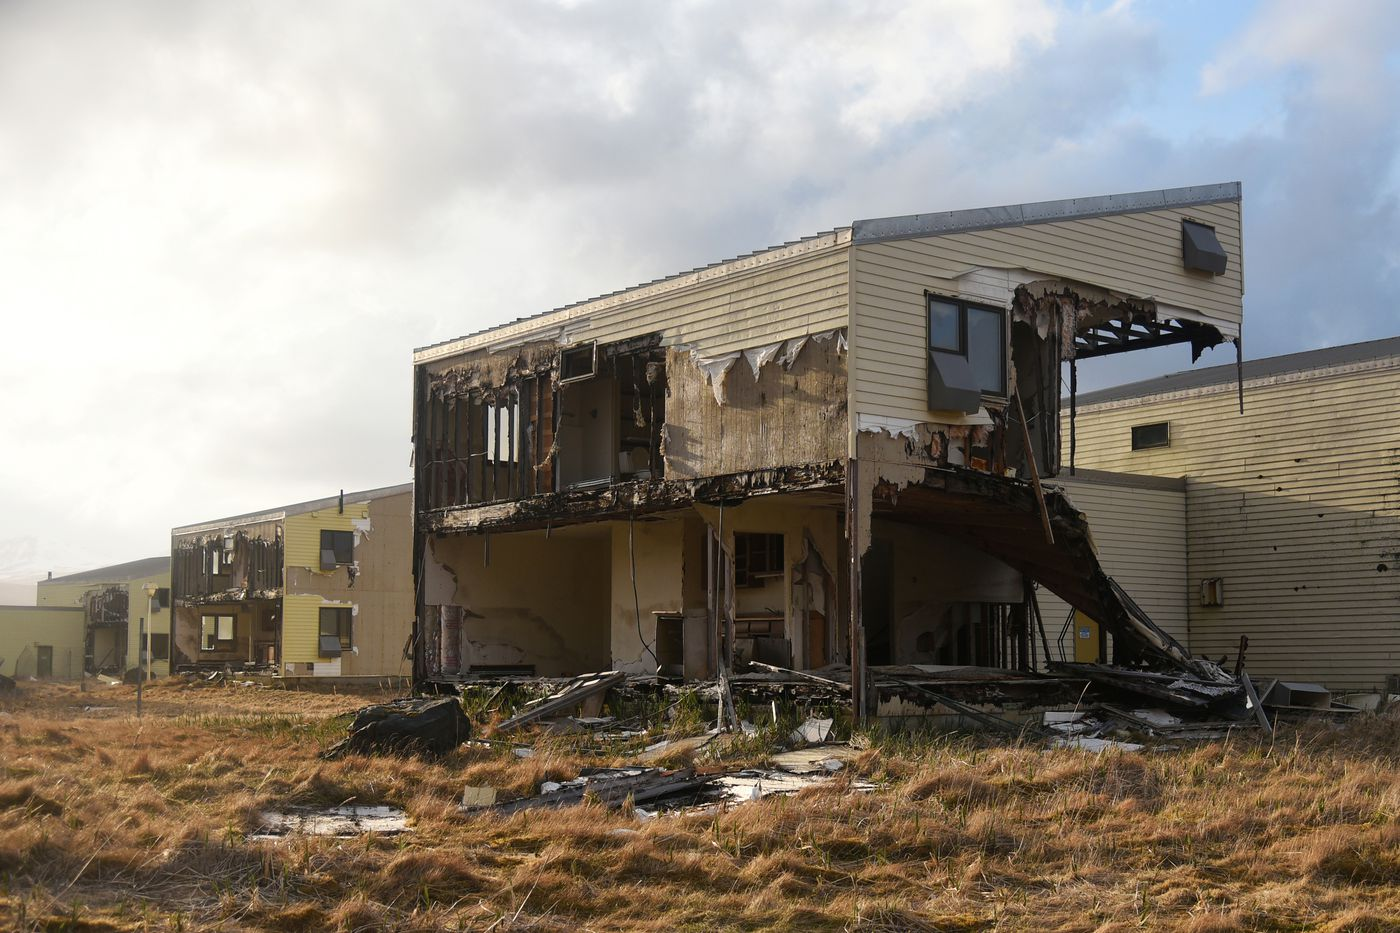 Abandoned housing in Adak, Alaska. The deterioration of structures in Adak has caused no shortage of frustration, sadness and finger-pointing. Determining responsibility — and paying — for cleanup in this remote community may become a contentious political issue in coming years. Photographed April 30, 2019. (Paxson Woelber)